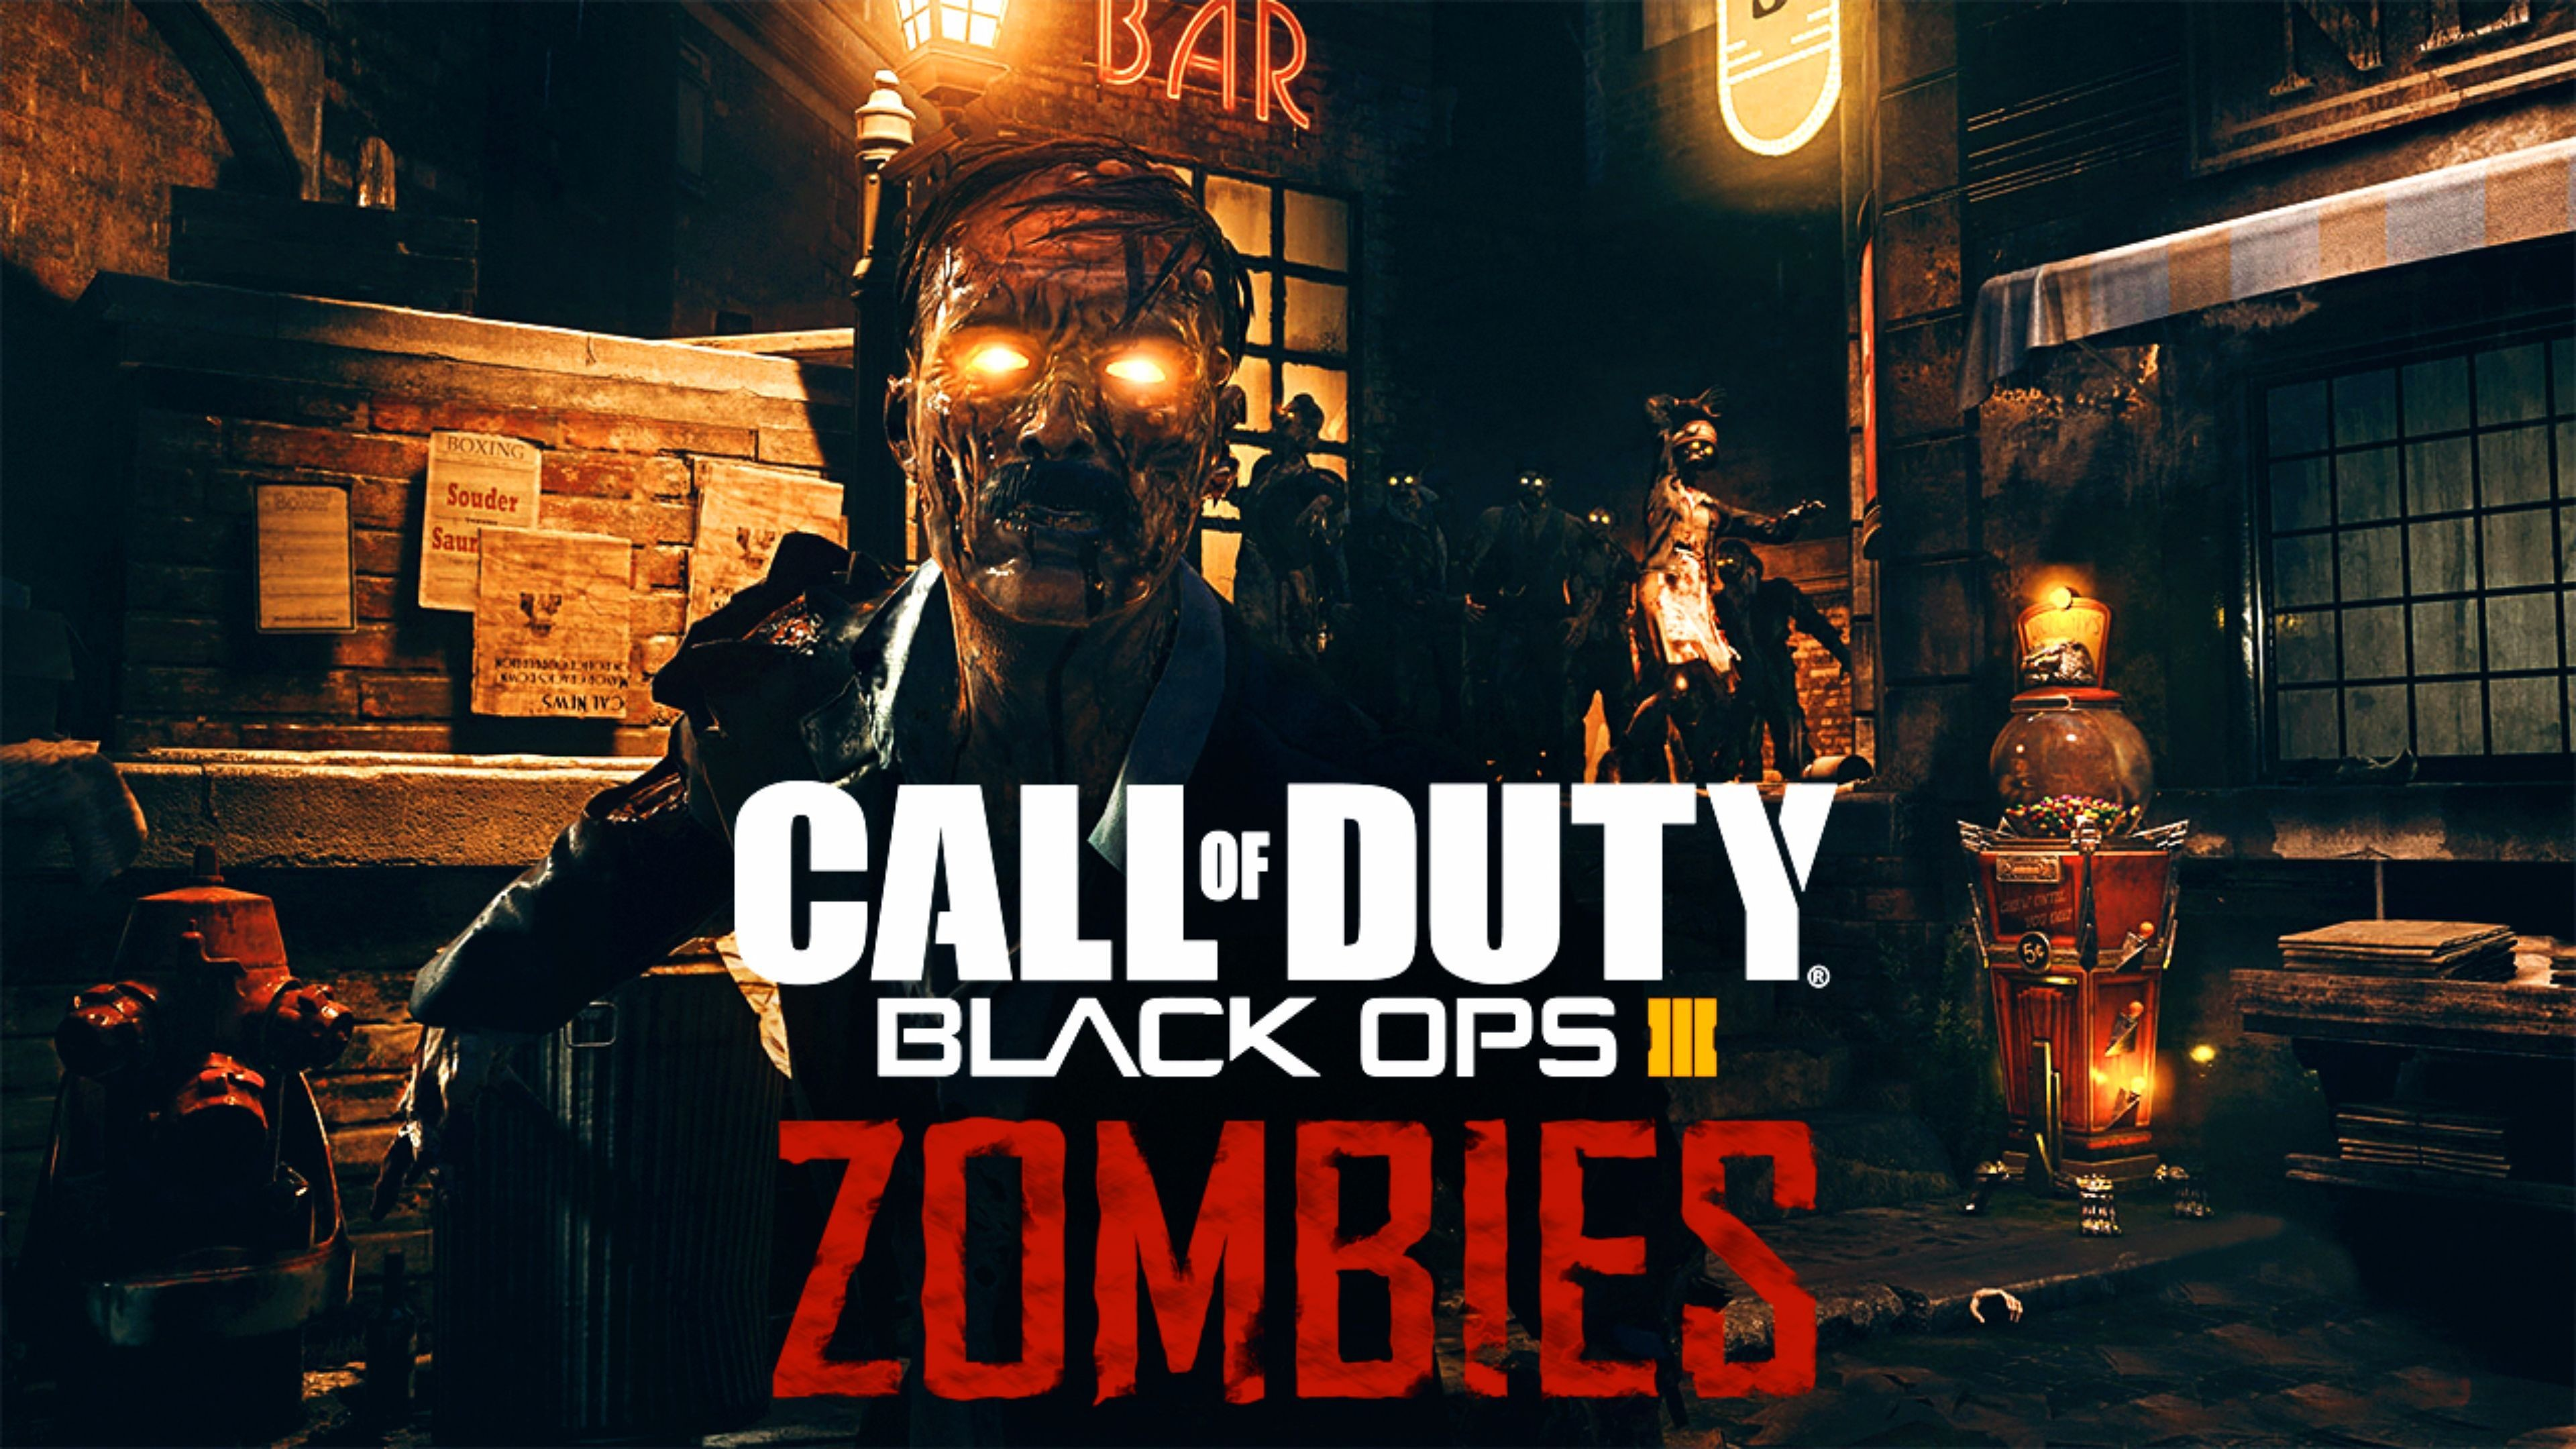 Black Ops 3 Zombies Wallpaper (83+ images)